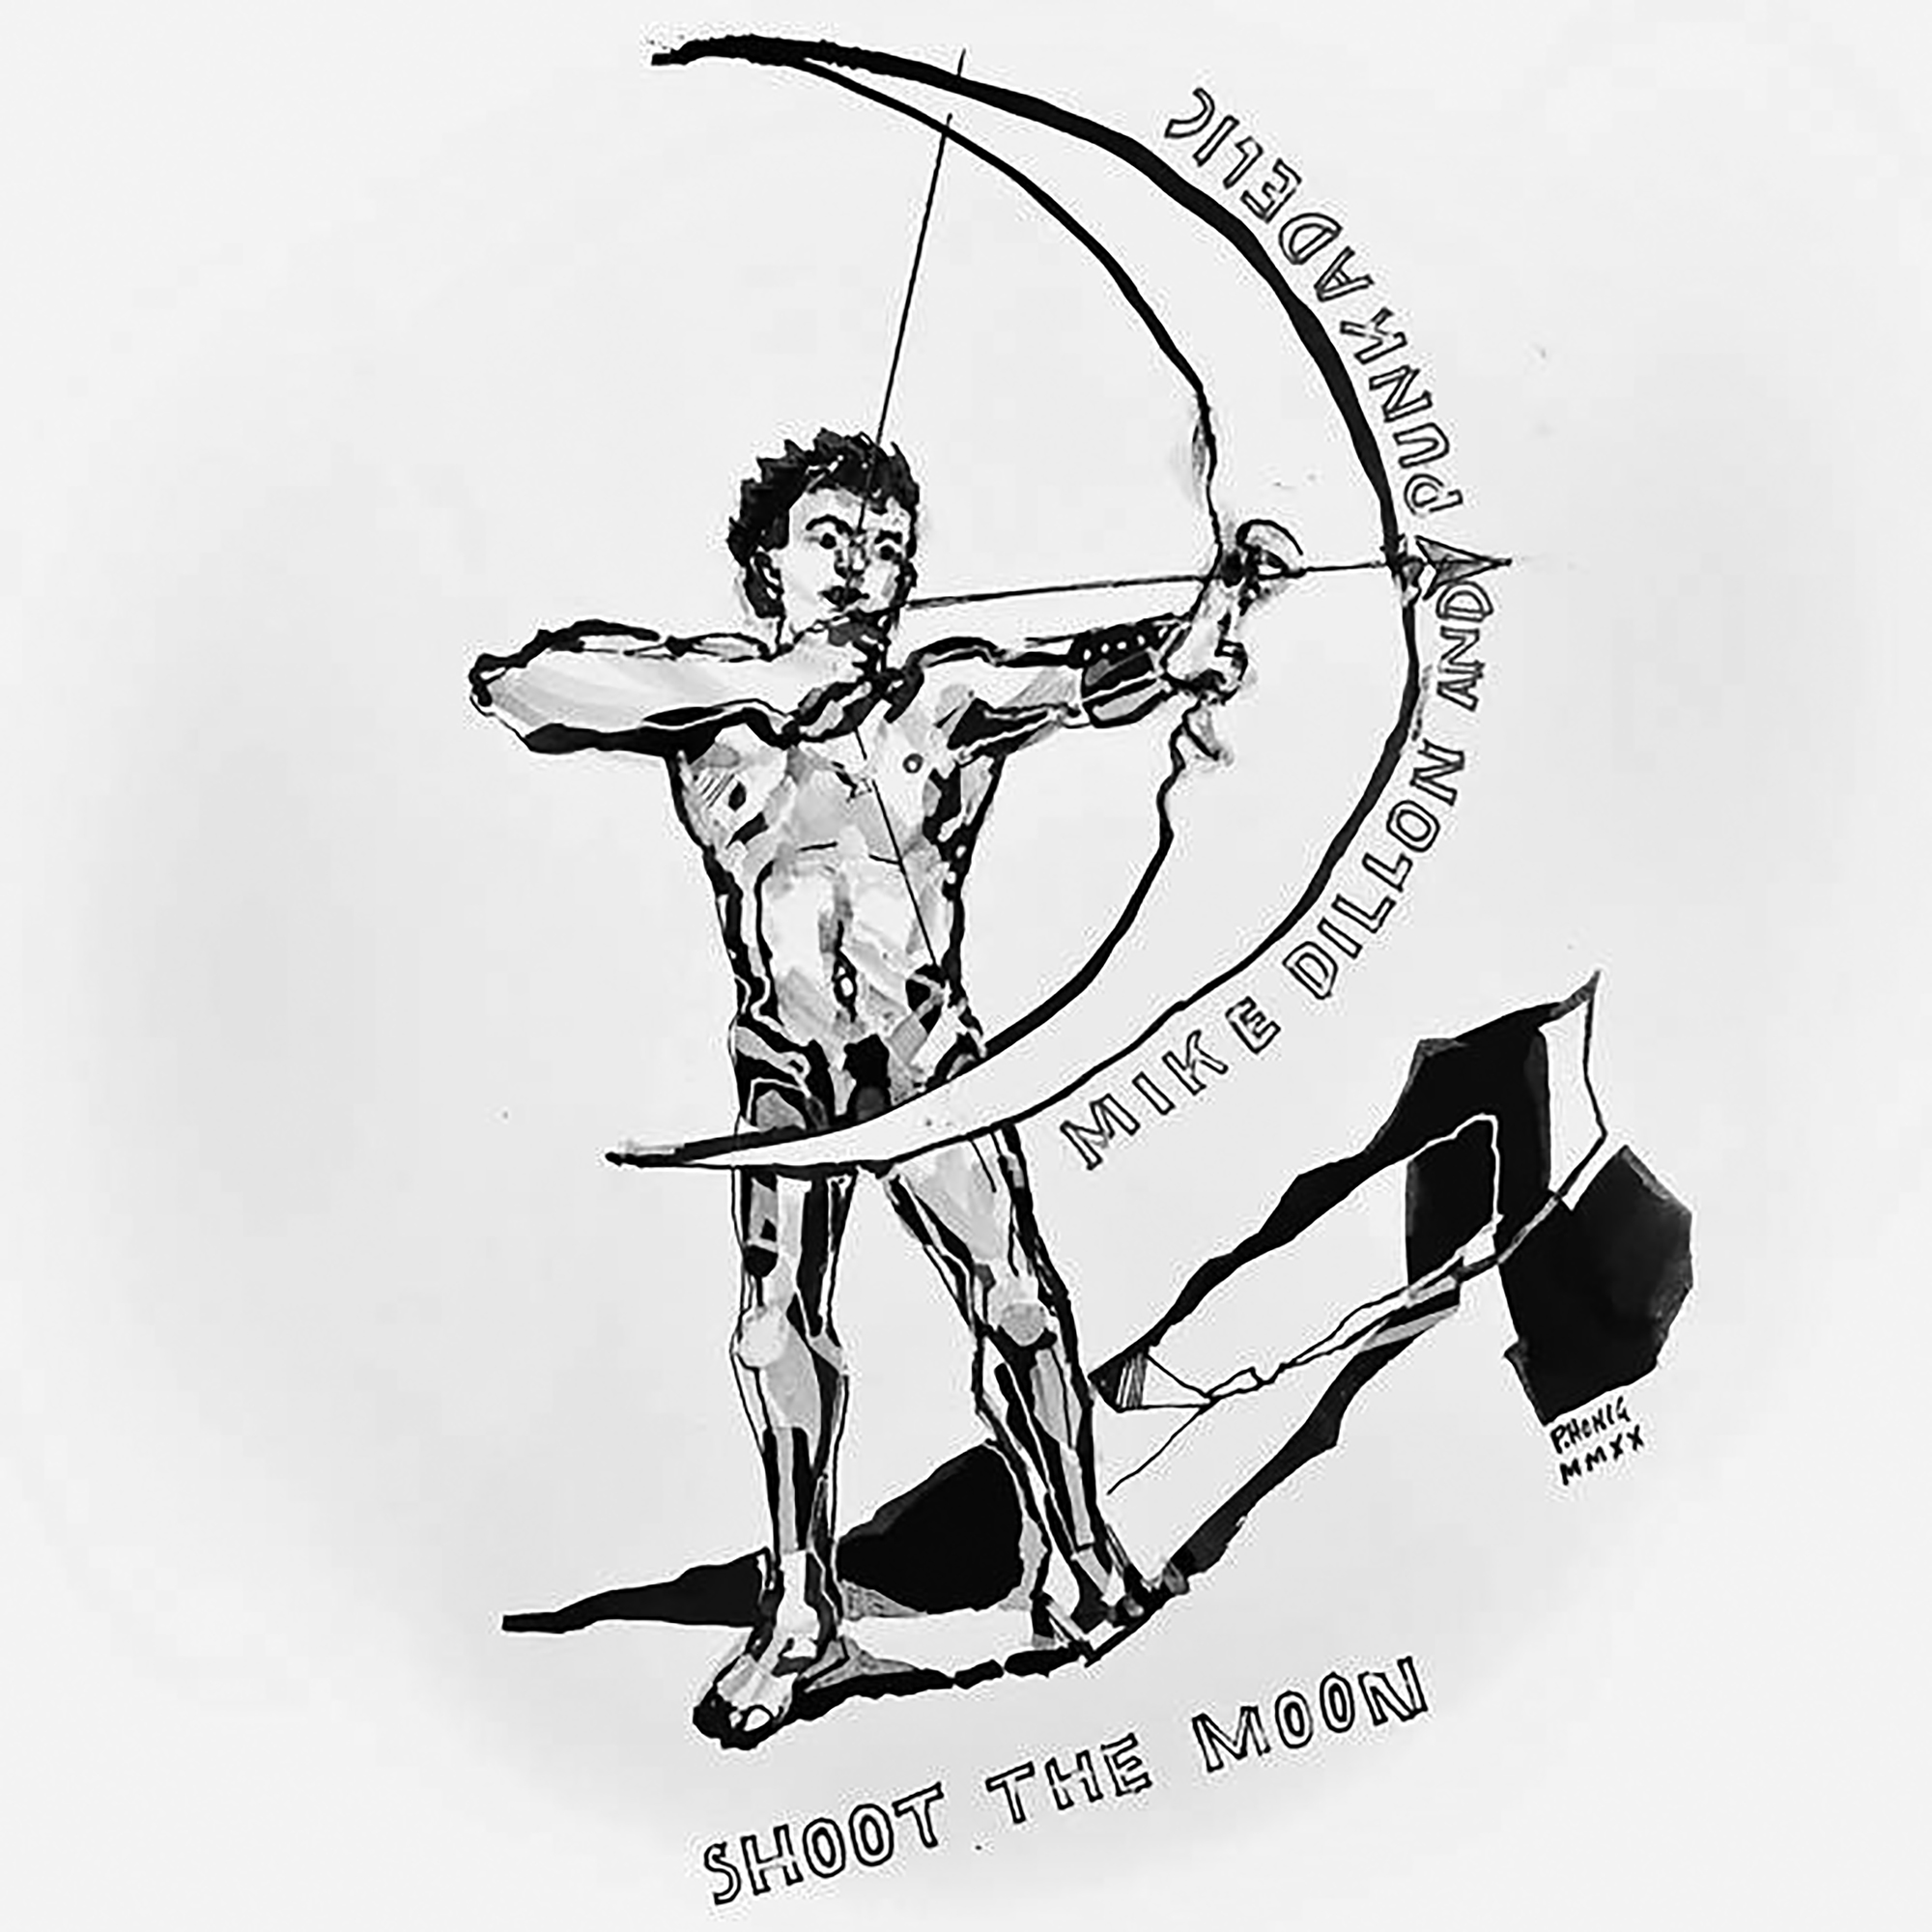 """Album cover for Shoot the Moon by Mike Dillon and Punkadelic. It's a black and white image of a person shooting a bow and arrow, and the bow is a crescent moon. The person isn't wearing clothes, and the moon covers their genitals. Along the curve of the moon reads """"Mike Dillon and Punkadelic"""" and below the person's feet reads """"Shoot the Moon."""" There's an abstract design beneath the person that seems to act as a shadow."""